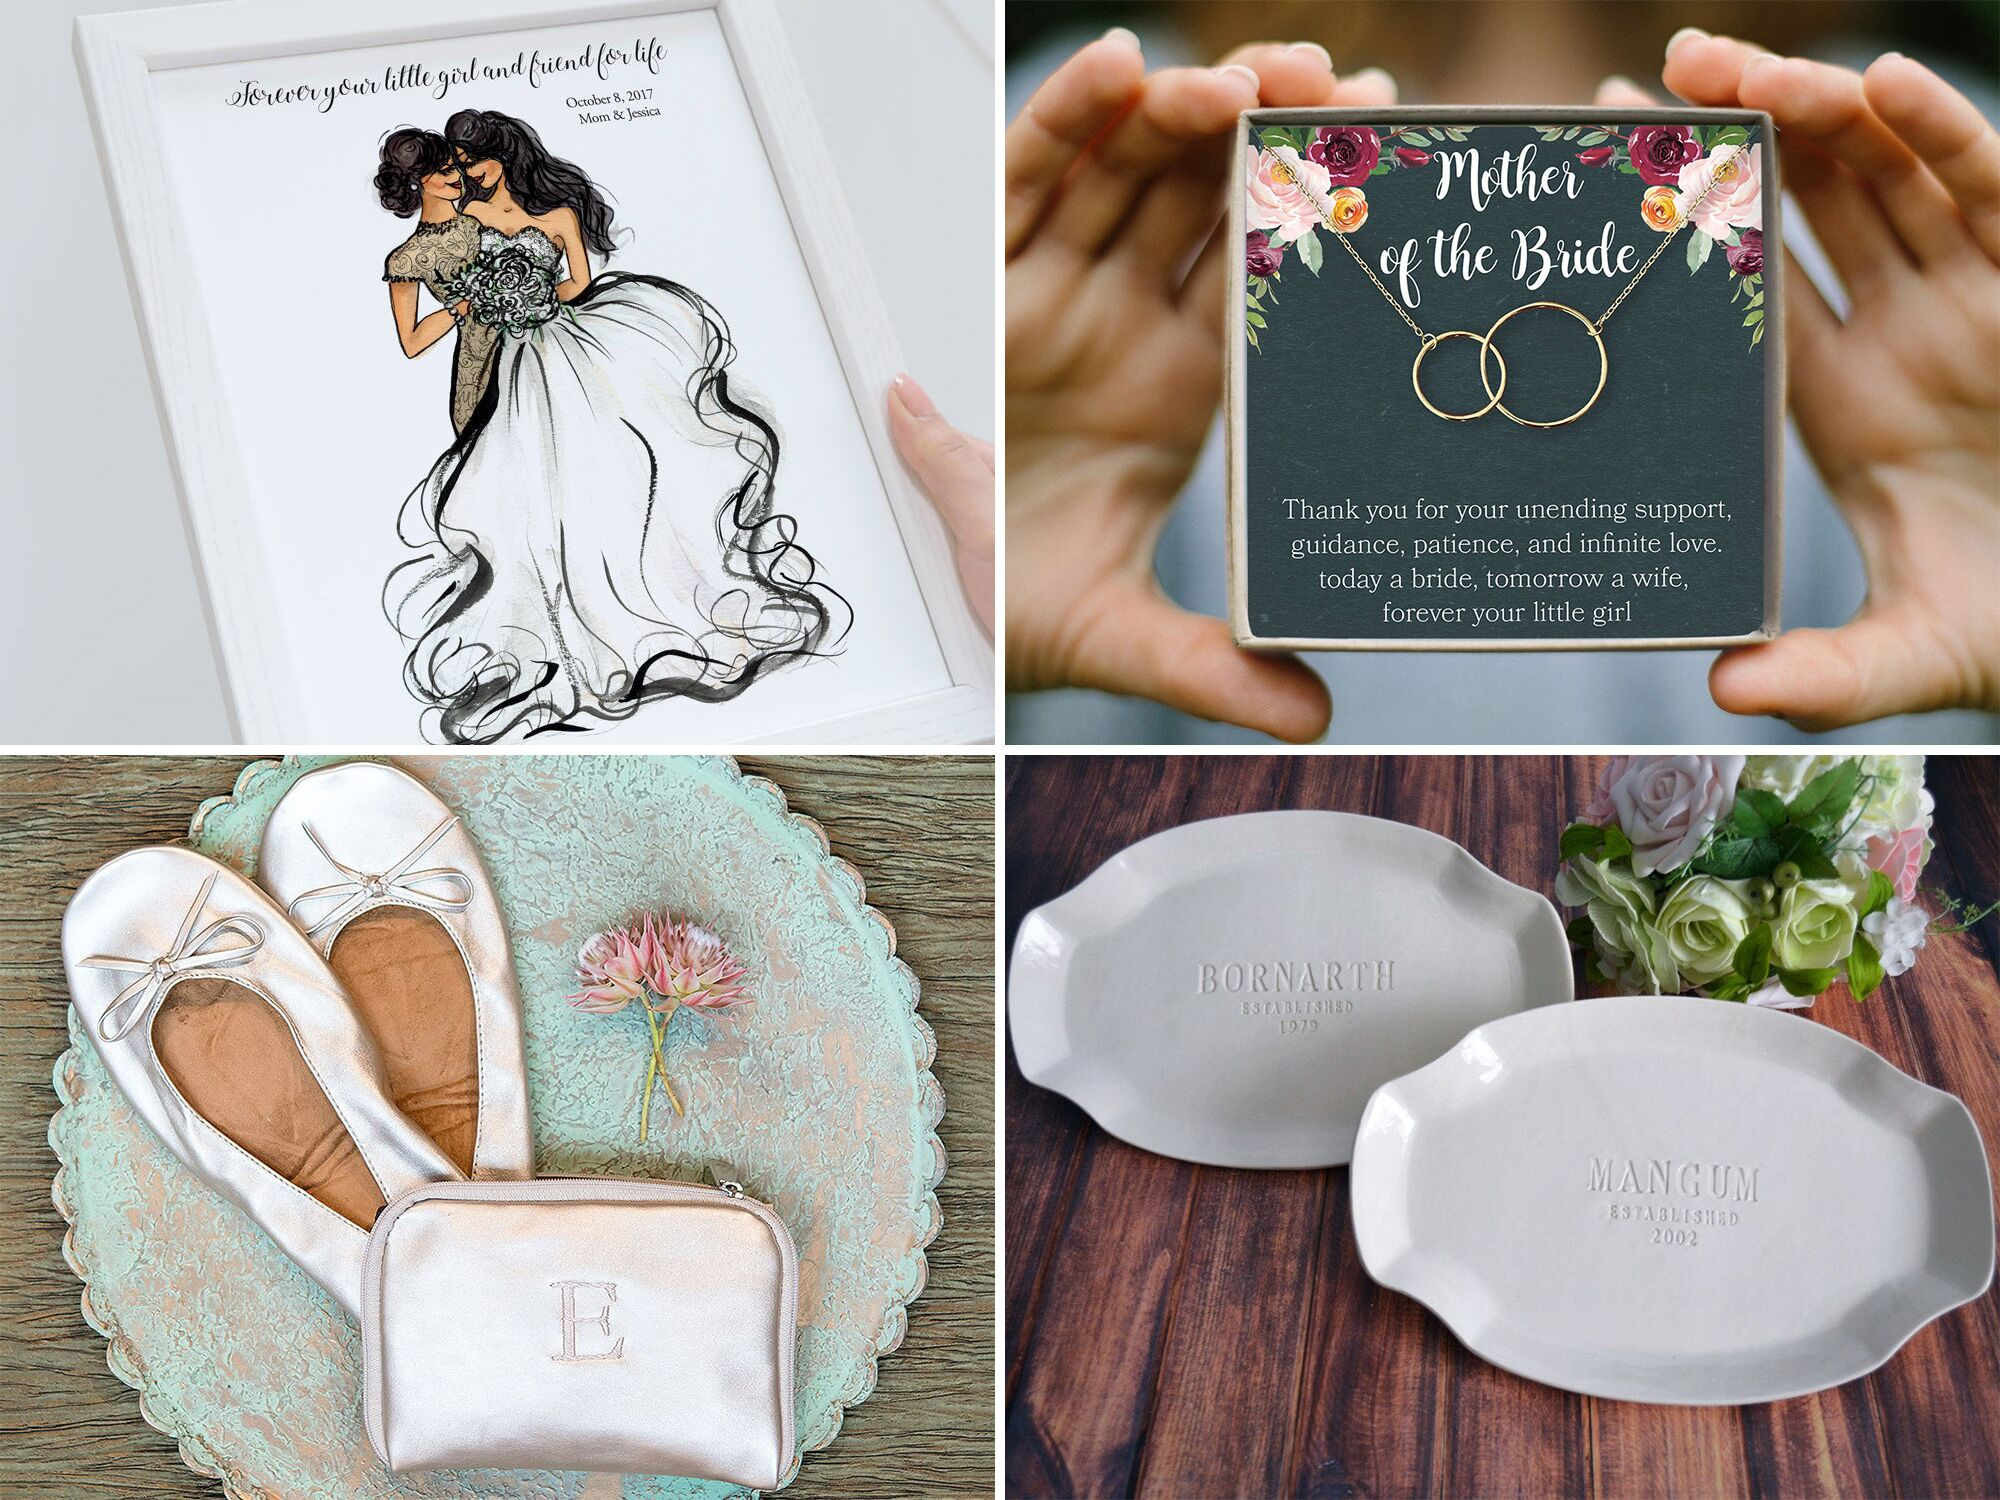 Mother of the Bride or Mother of the Groom  Thank you wedding gift